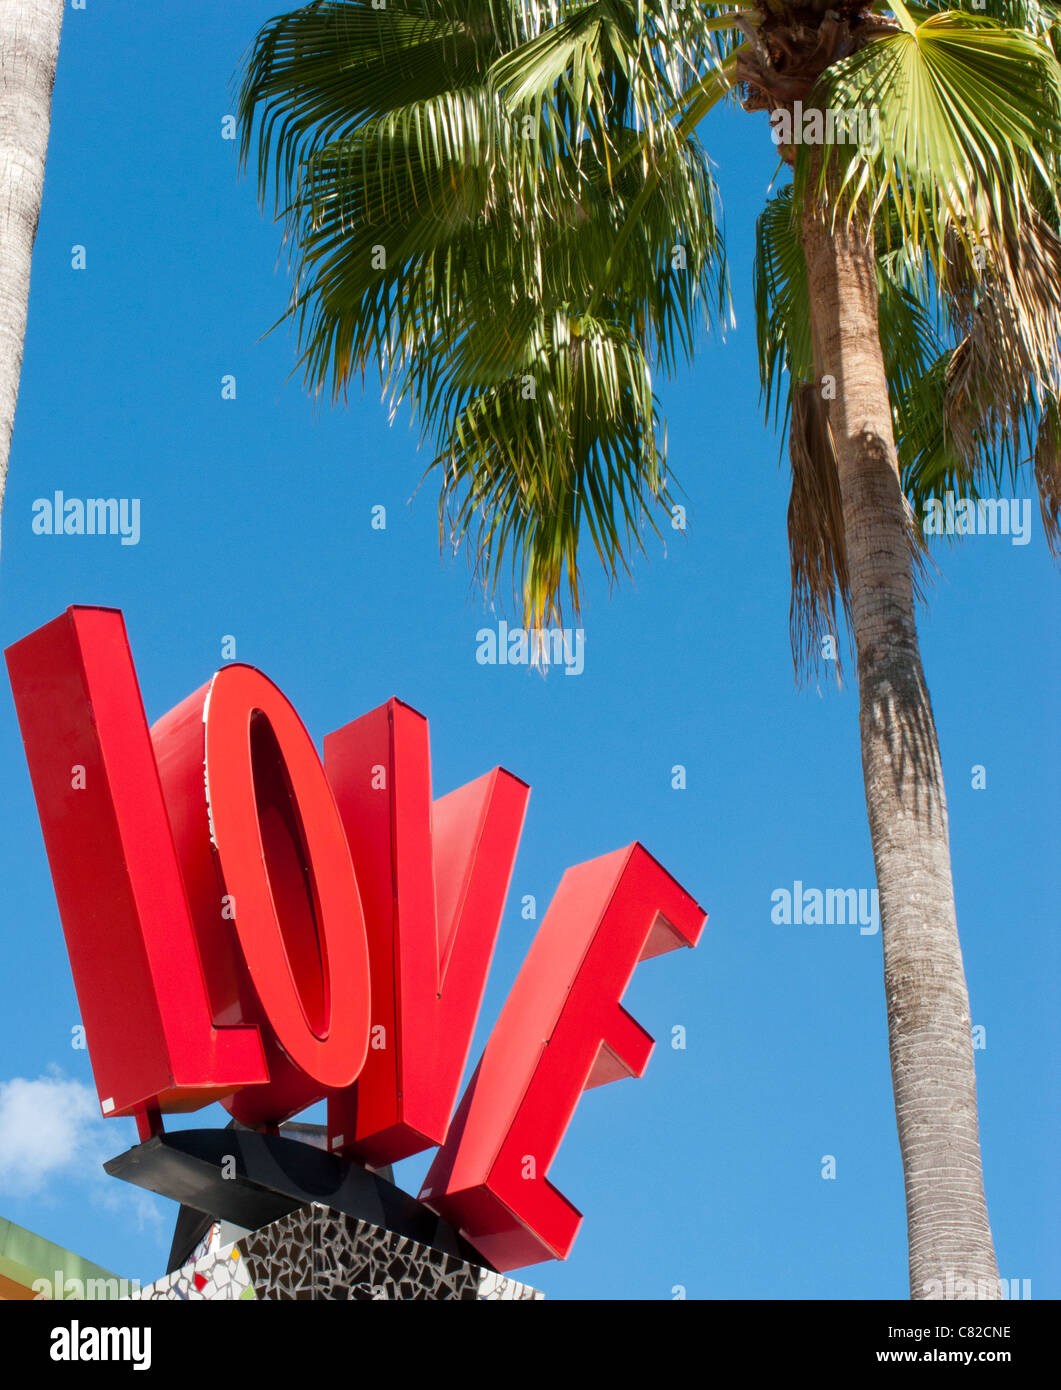 LOVE SIGN AND PALM TREE IN DOWNTOWN DISNEY ORLANDO FLORIDA - Stock Image